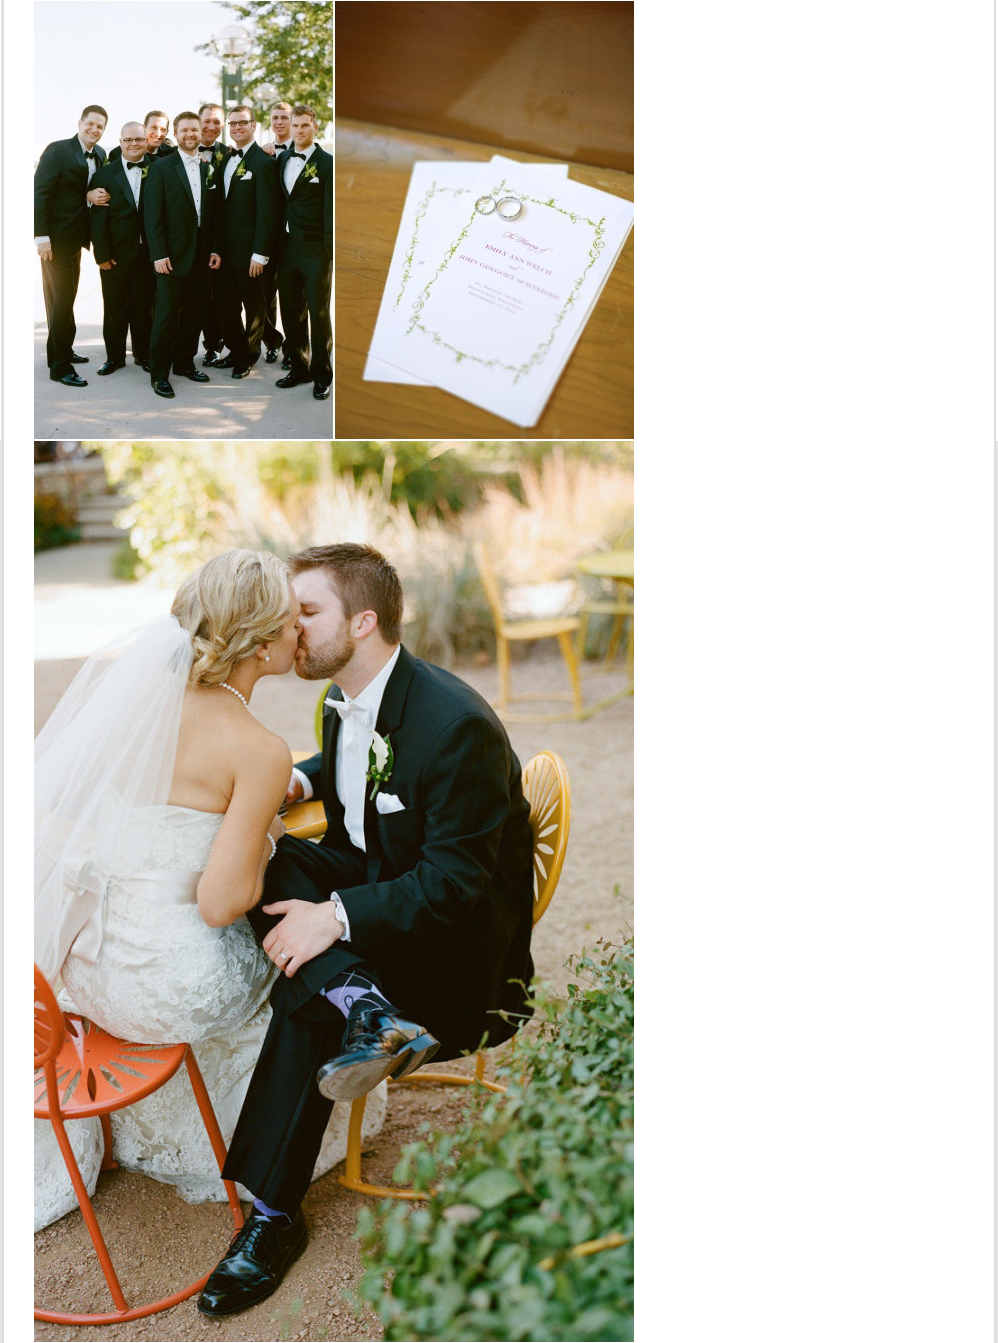 20130827_StyleMePretty_Emily&Jack-3.png